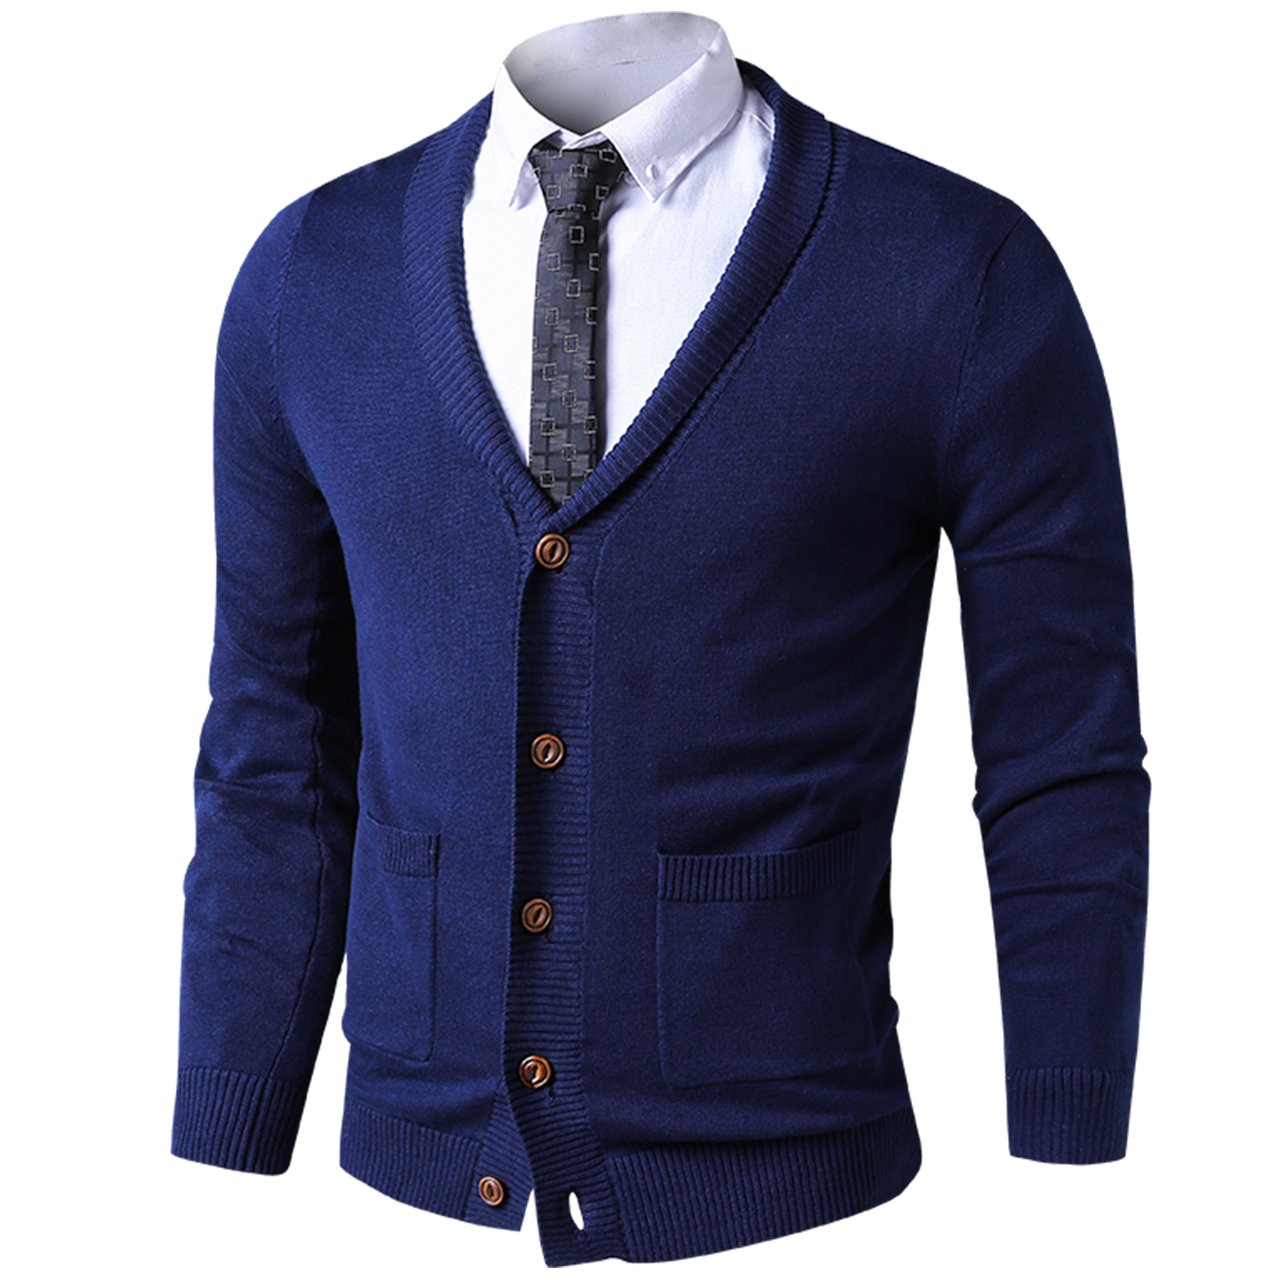 LTIFONE Mens Slim Fit Soft Cable Knit Shawl Collar Button Down Cardigan Sweater with Ribbing Edge(Blue,L)